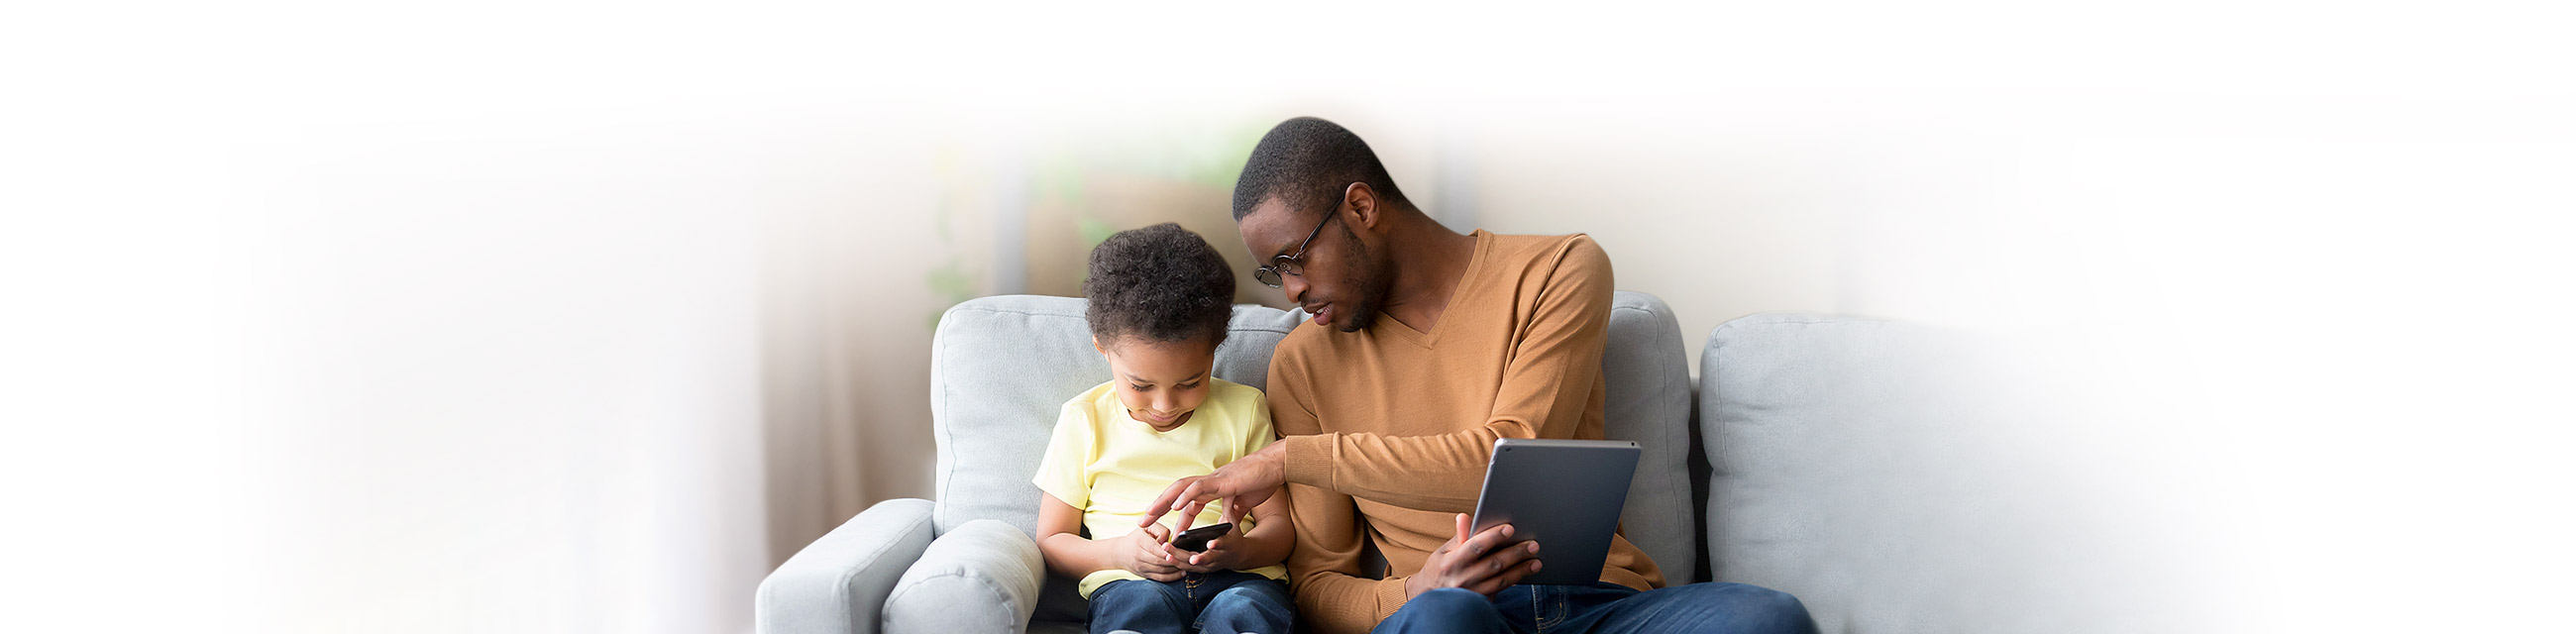 Father and son using devices